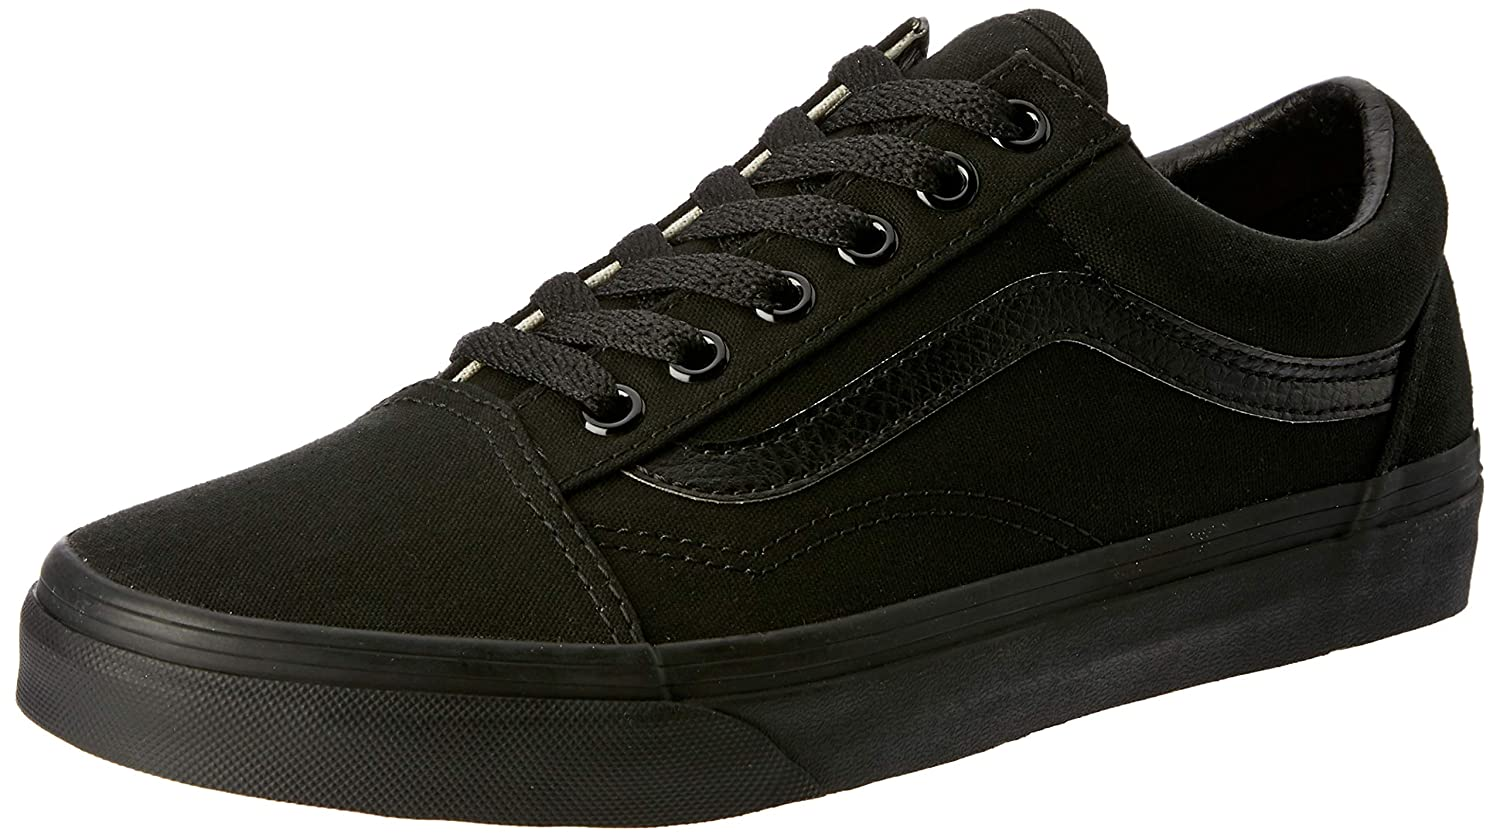 Noir Noir Vans UA Old Skool, baskets Basses Homme 3 UK